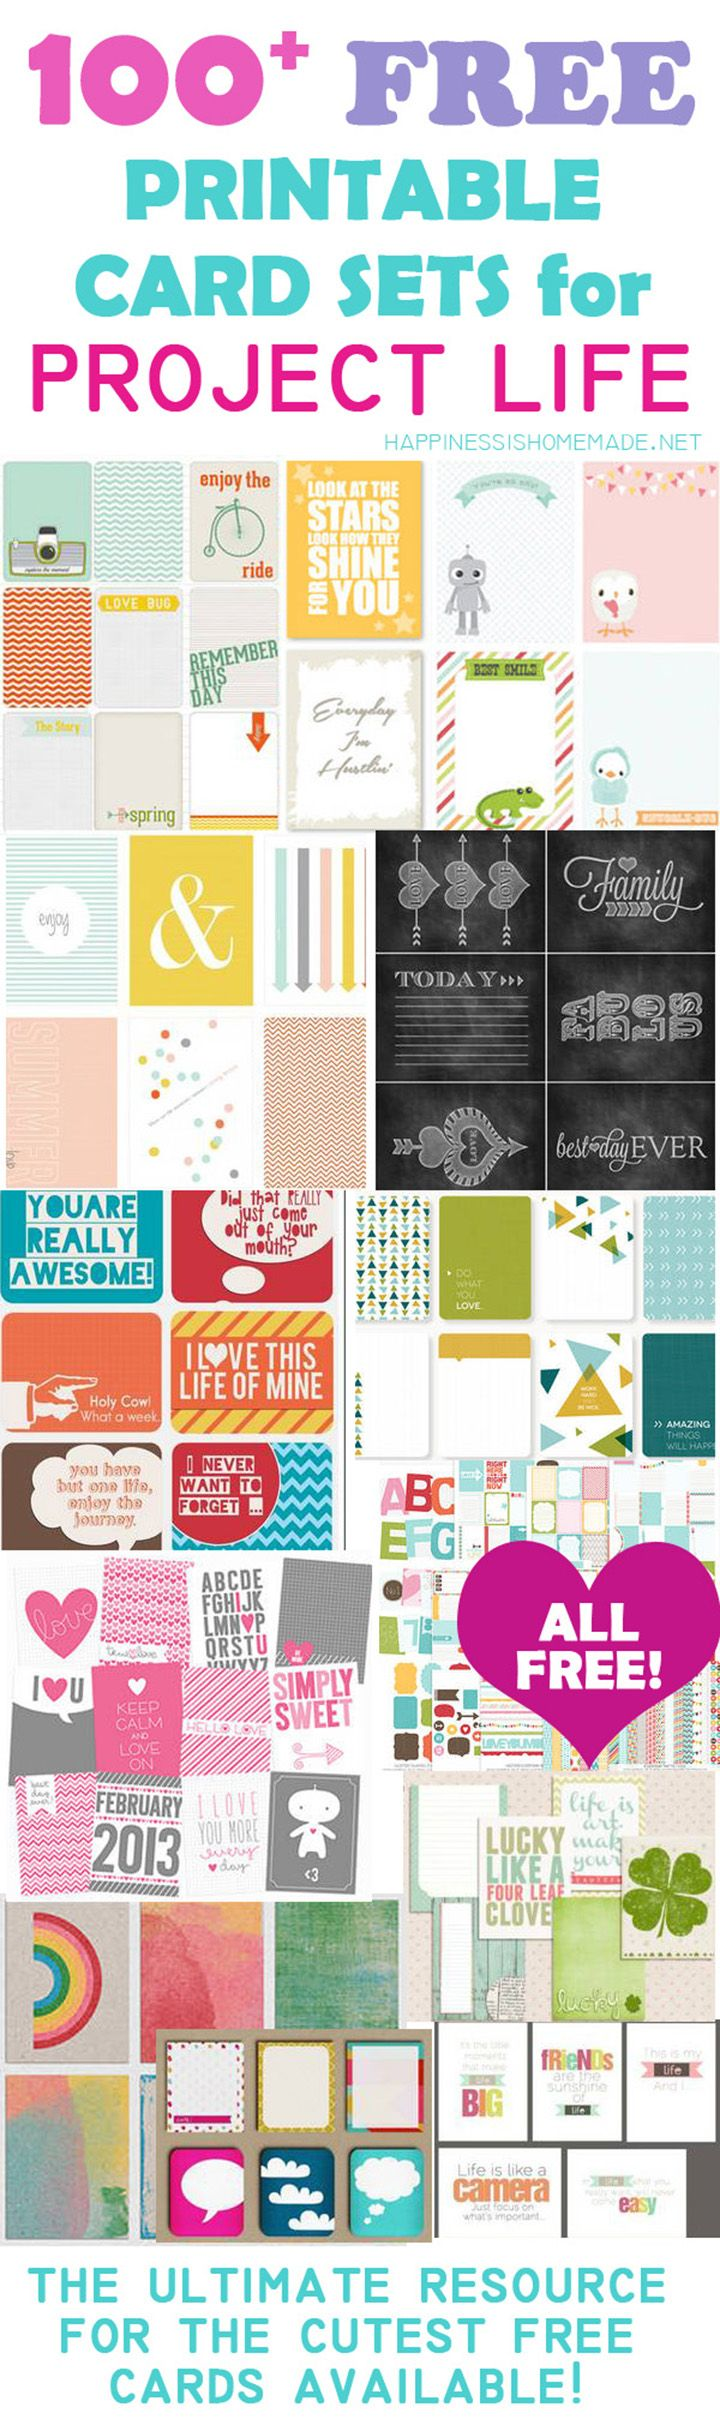 Over 100 of the best and cutest FREE printable Project Life 3x4 journal card sets all conveniently linked in one handy resource!